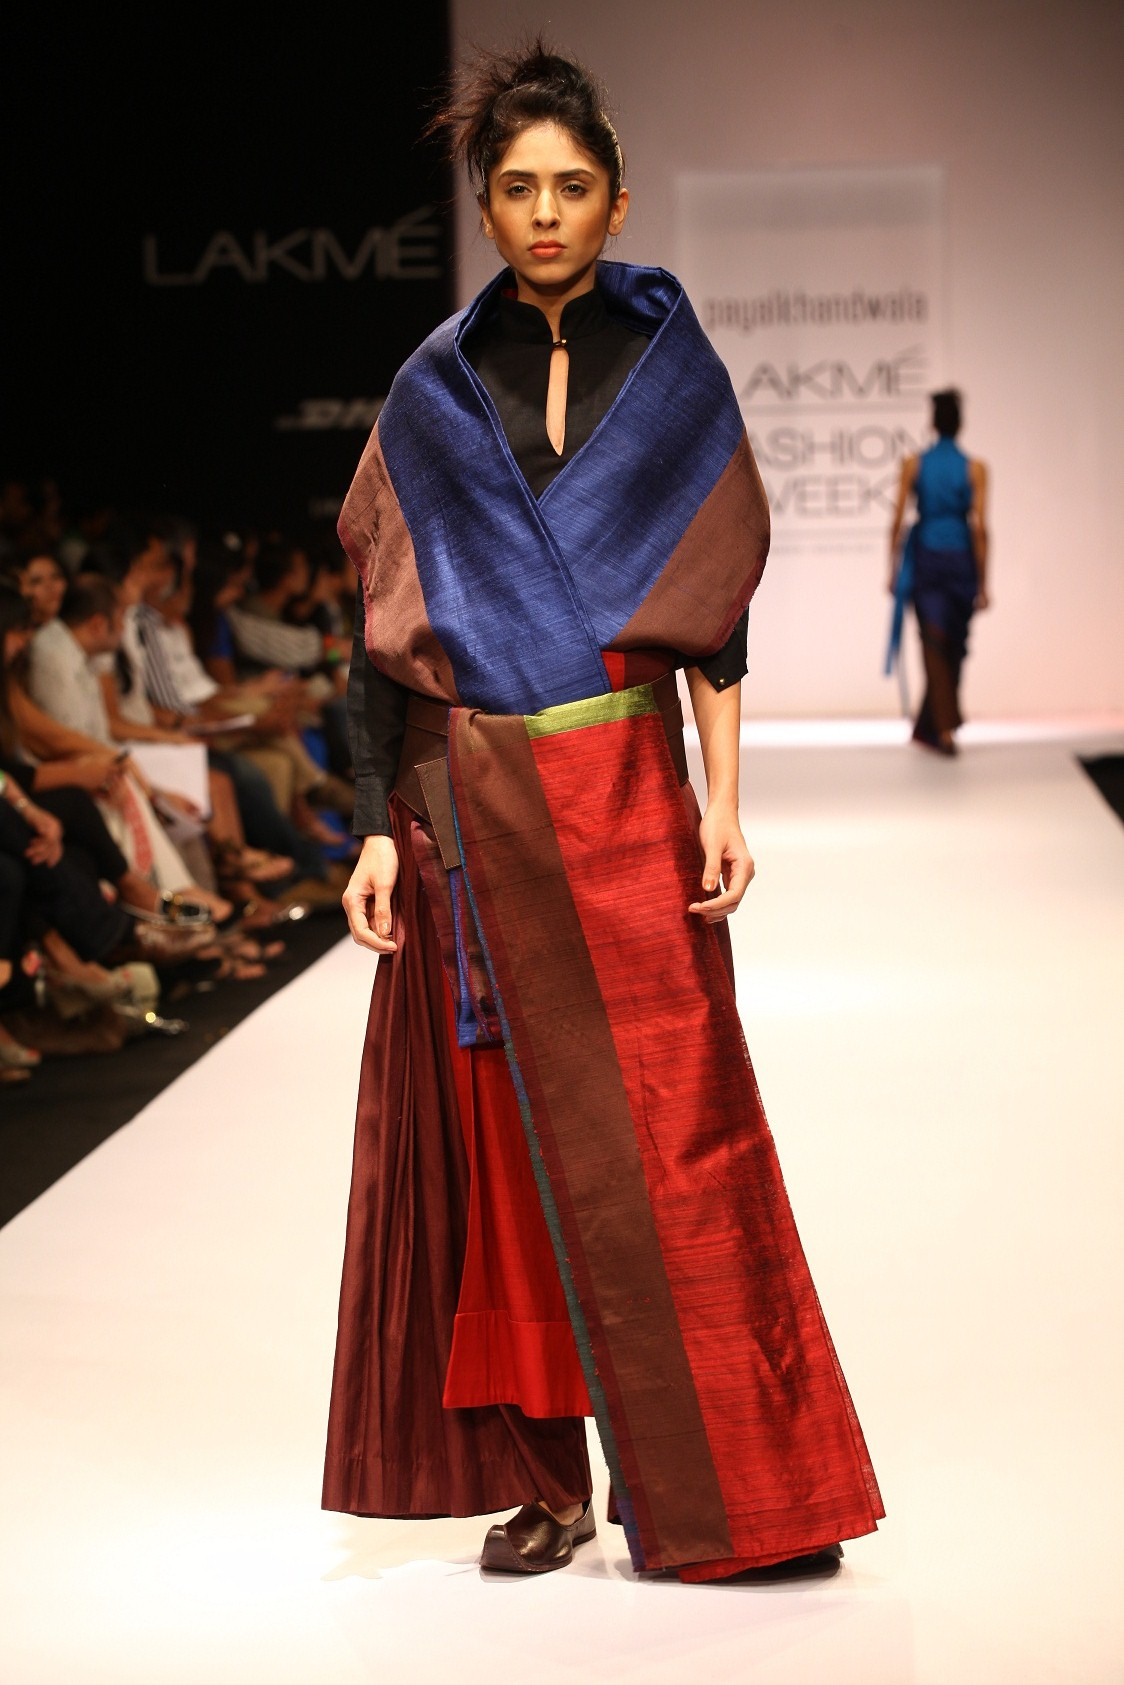 Bringing a sense of unconventional creativity for her line of garments, the collection worked around strong colours of rust, royal purple, maroon, electric blue, sun yellow, pure white, olive, brown and black.